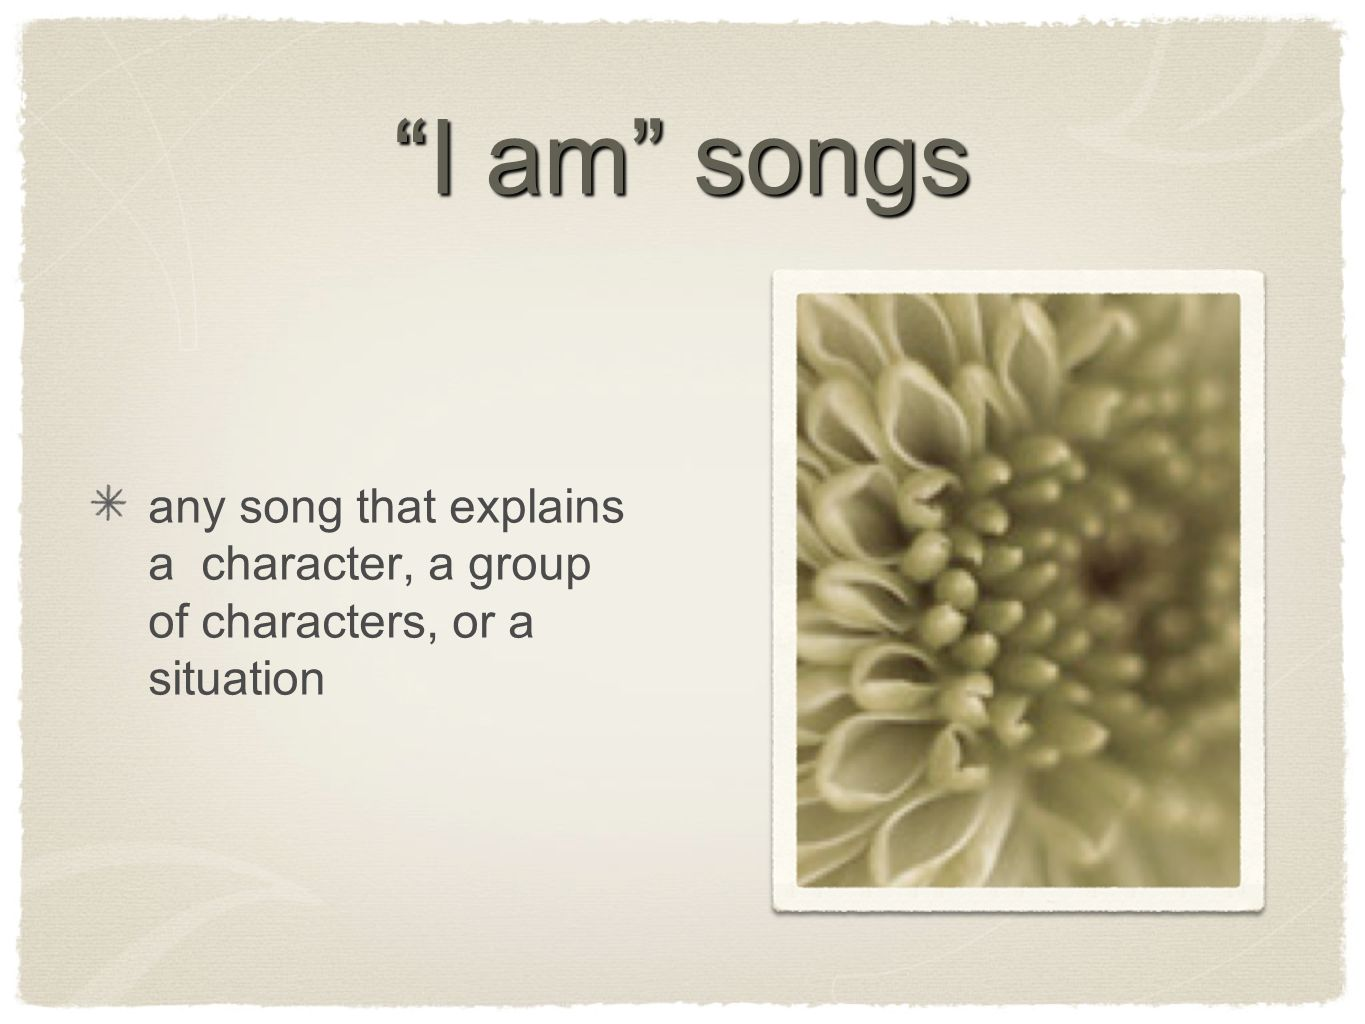 I am songs any song that explains a character, a group of characters, or a situation